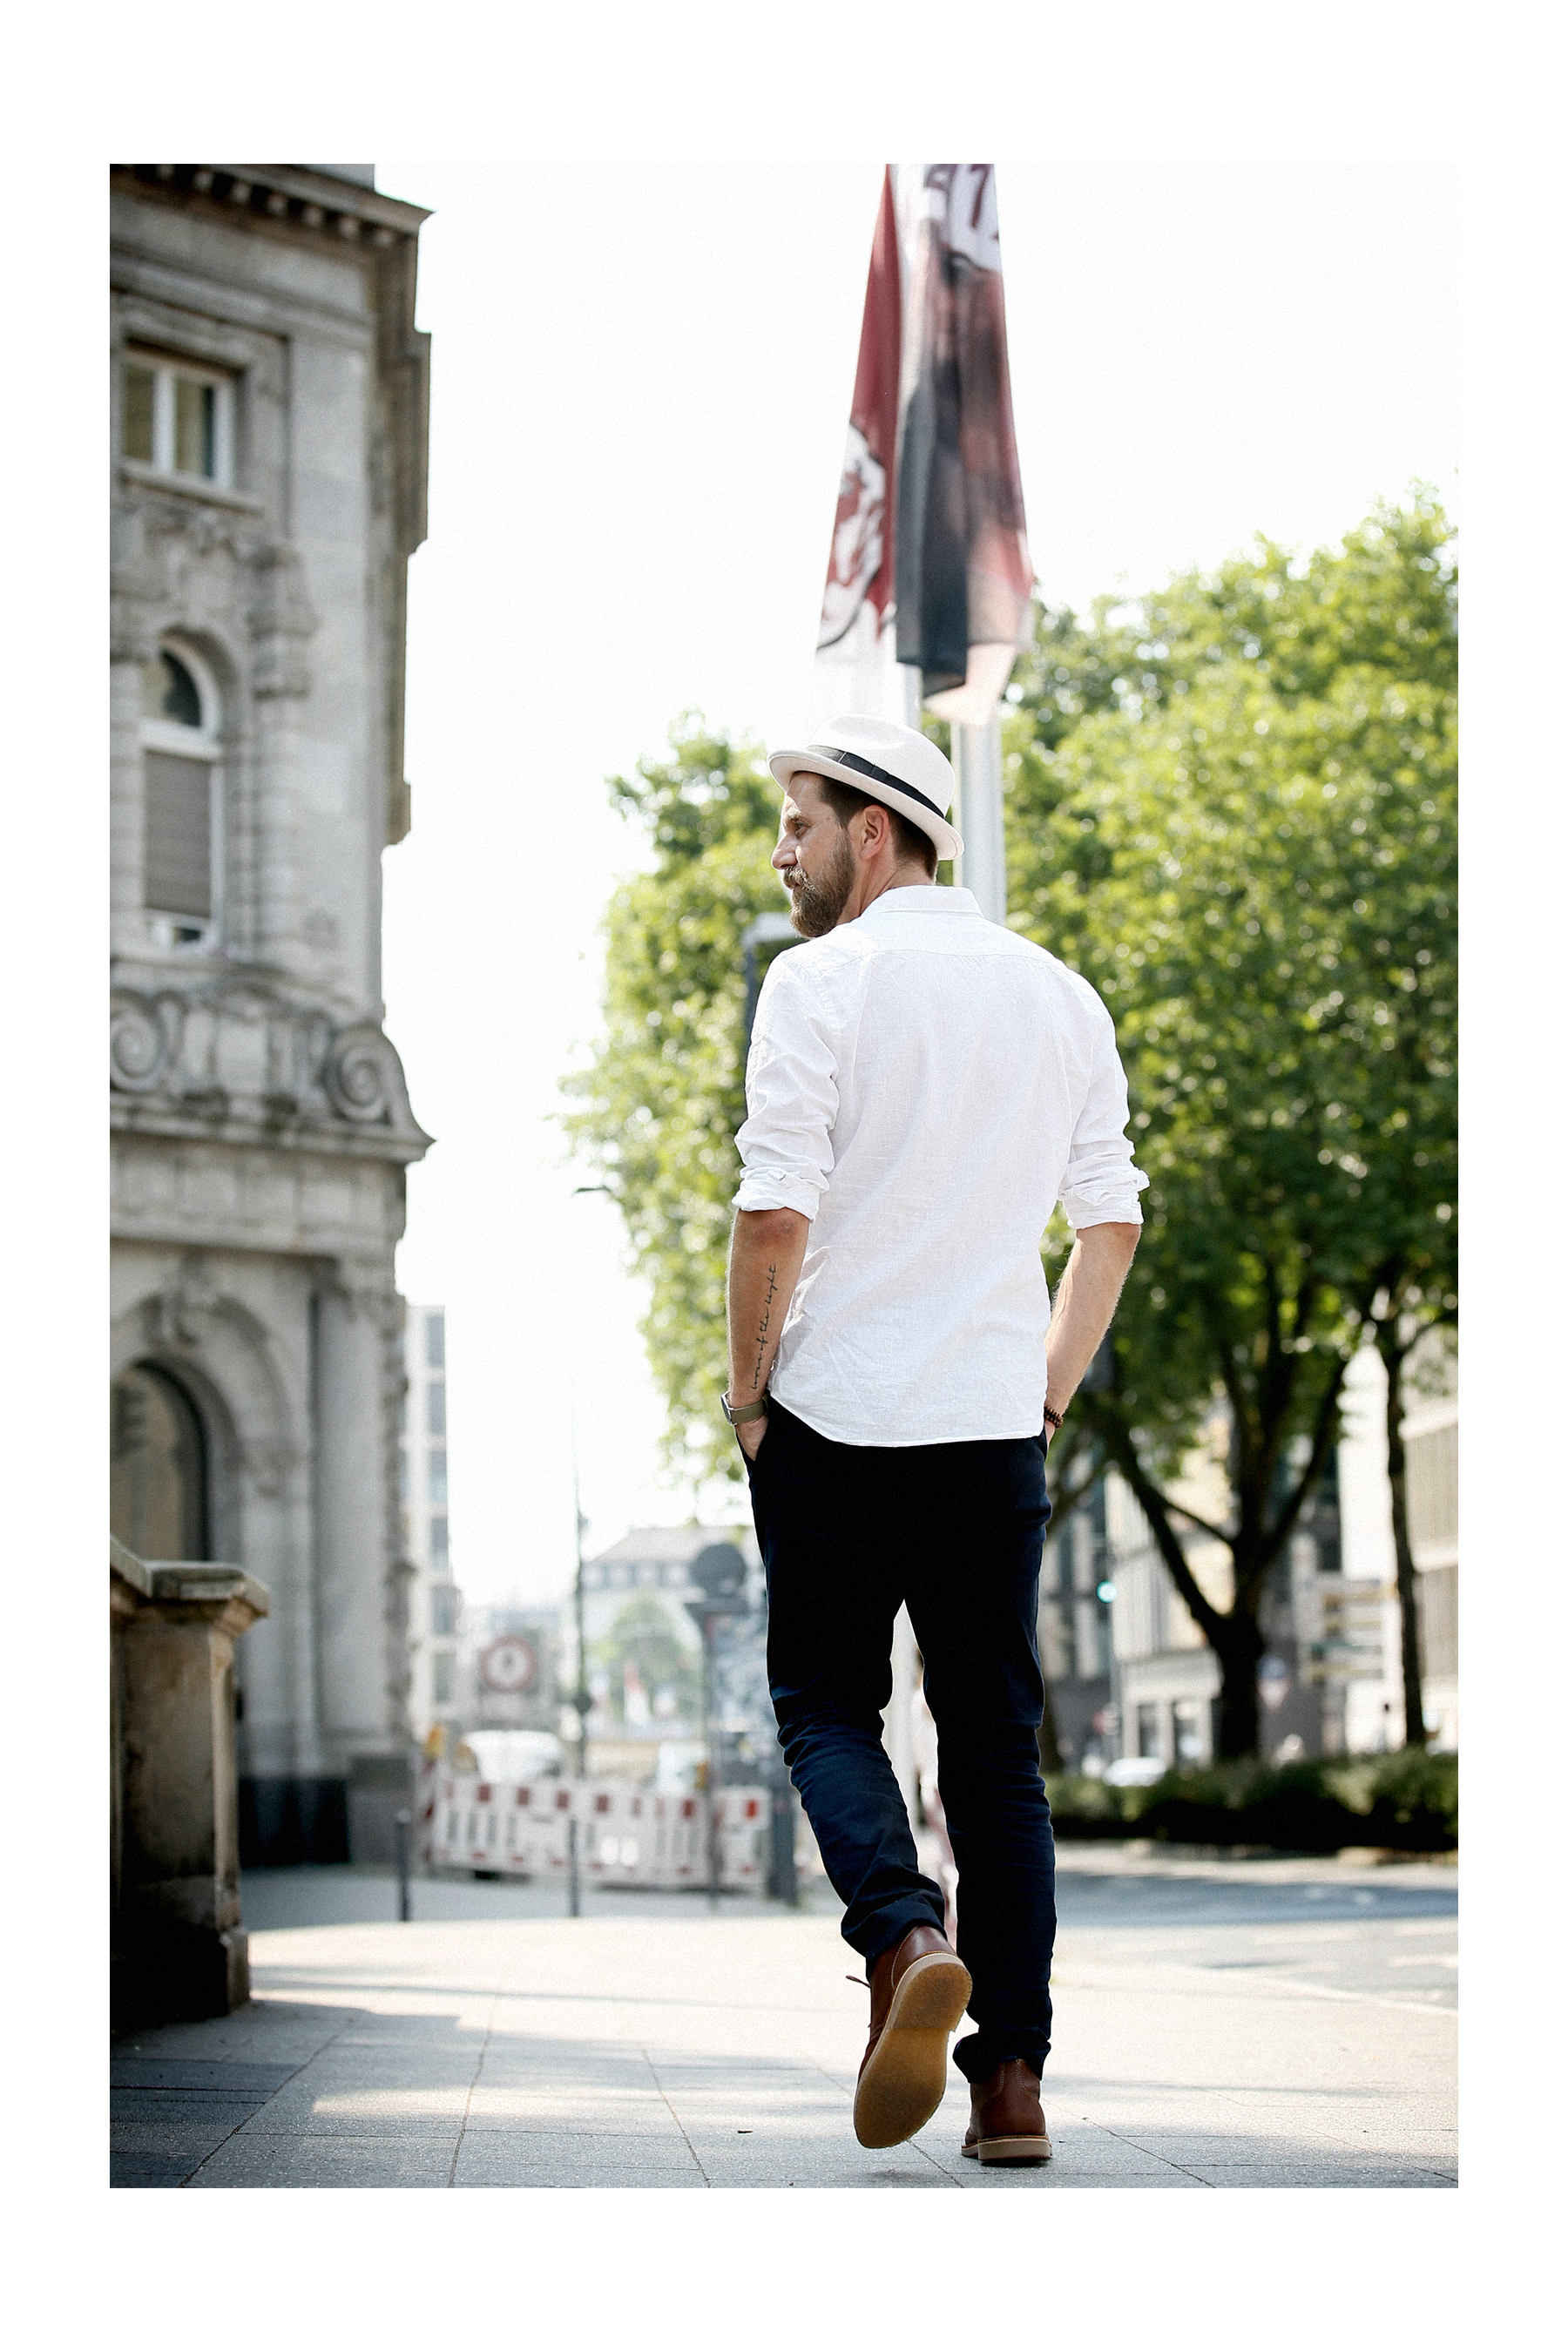 outfit white summer chic business sporty hat stetson zara man linen shirt elegant menlook menfashion manfashion beardedmen mann mit bart sacha schuhe leder schnürschuhe leather boots max bechmann style fashionblogger düsseldorf cats & dogs outfit 6